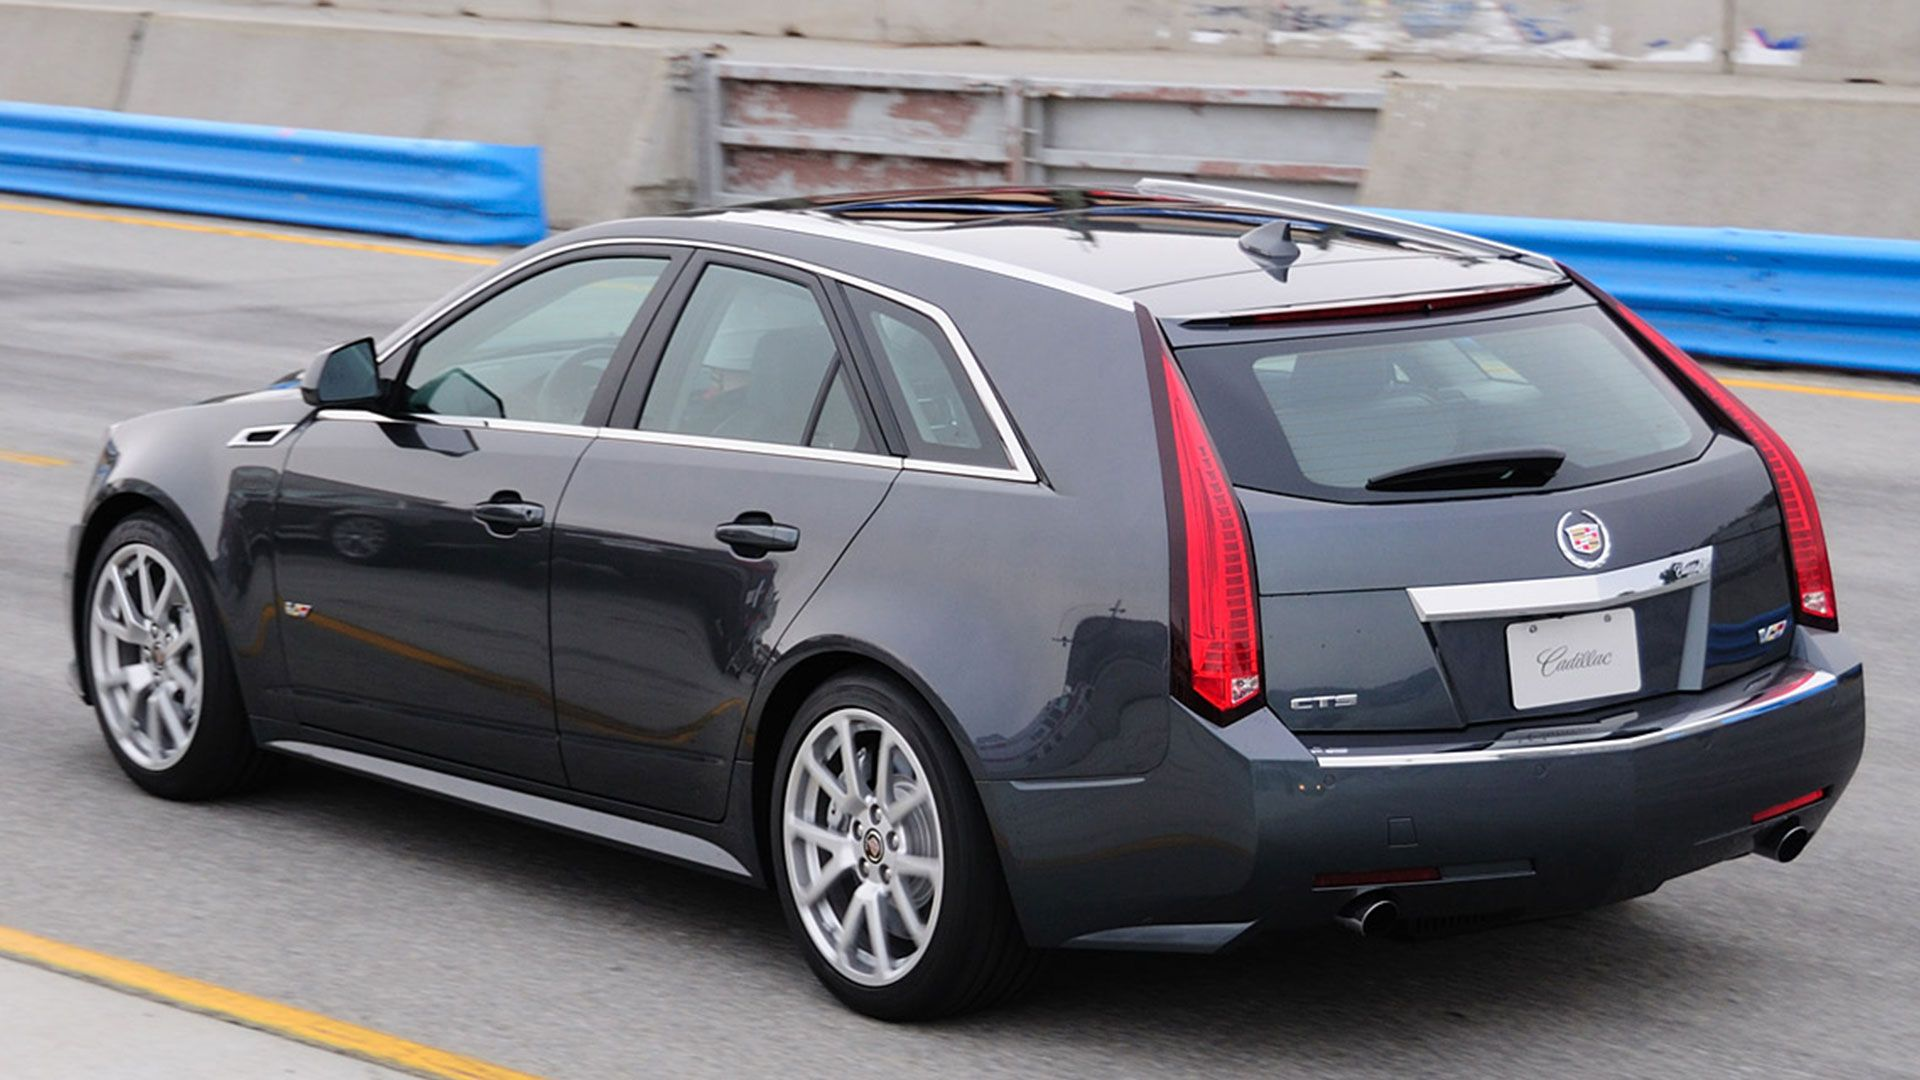 Cadillac cts v hennessey sport wagon my right foot is a liability pinterest cadillac cts cadillac and cars